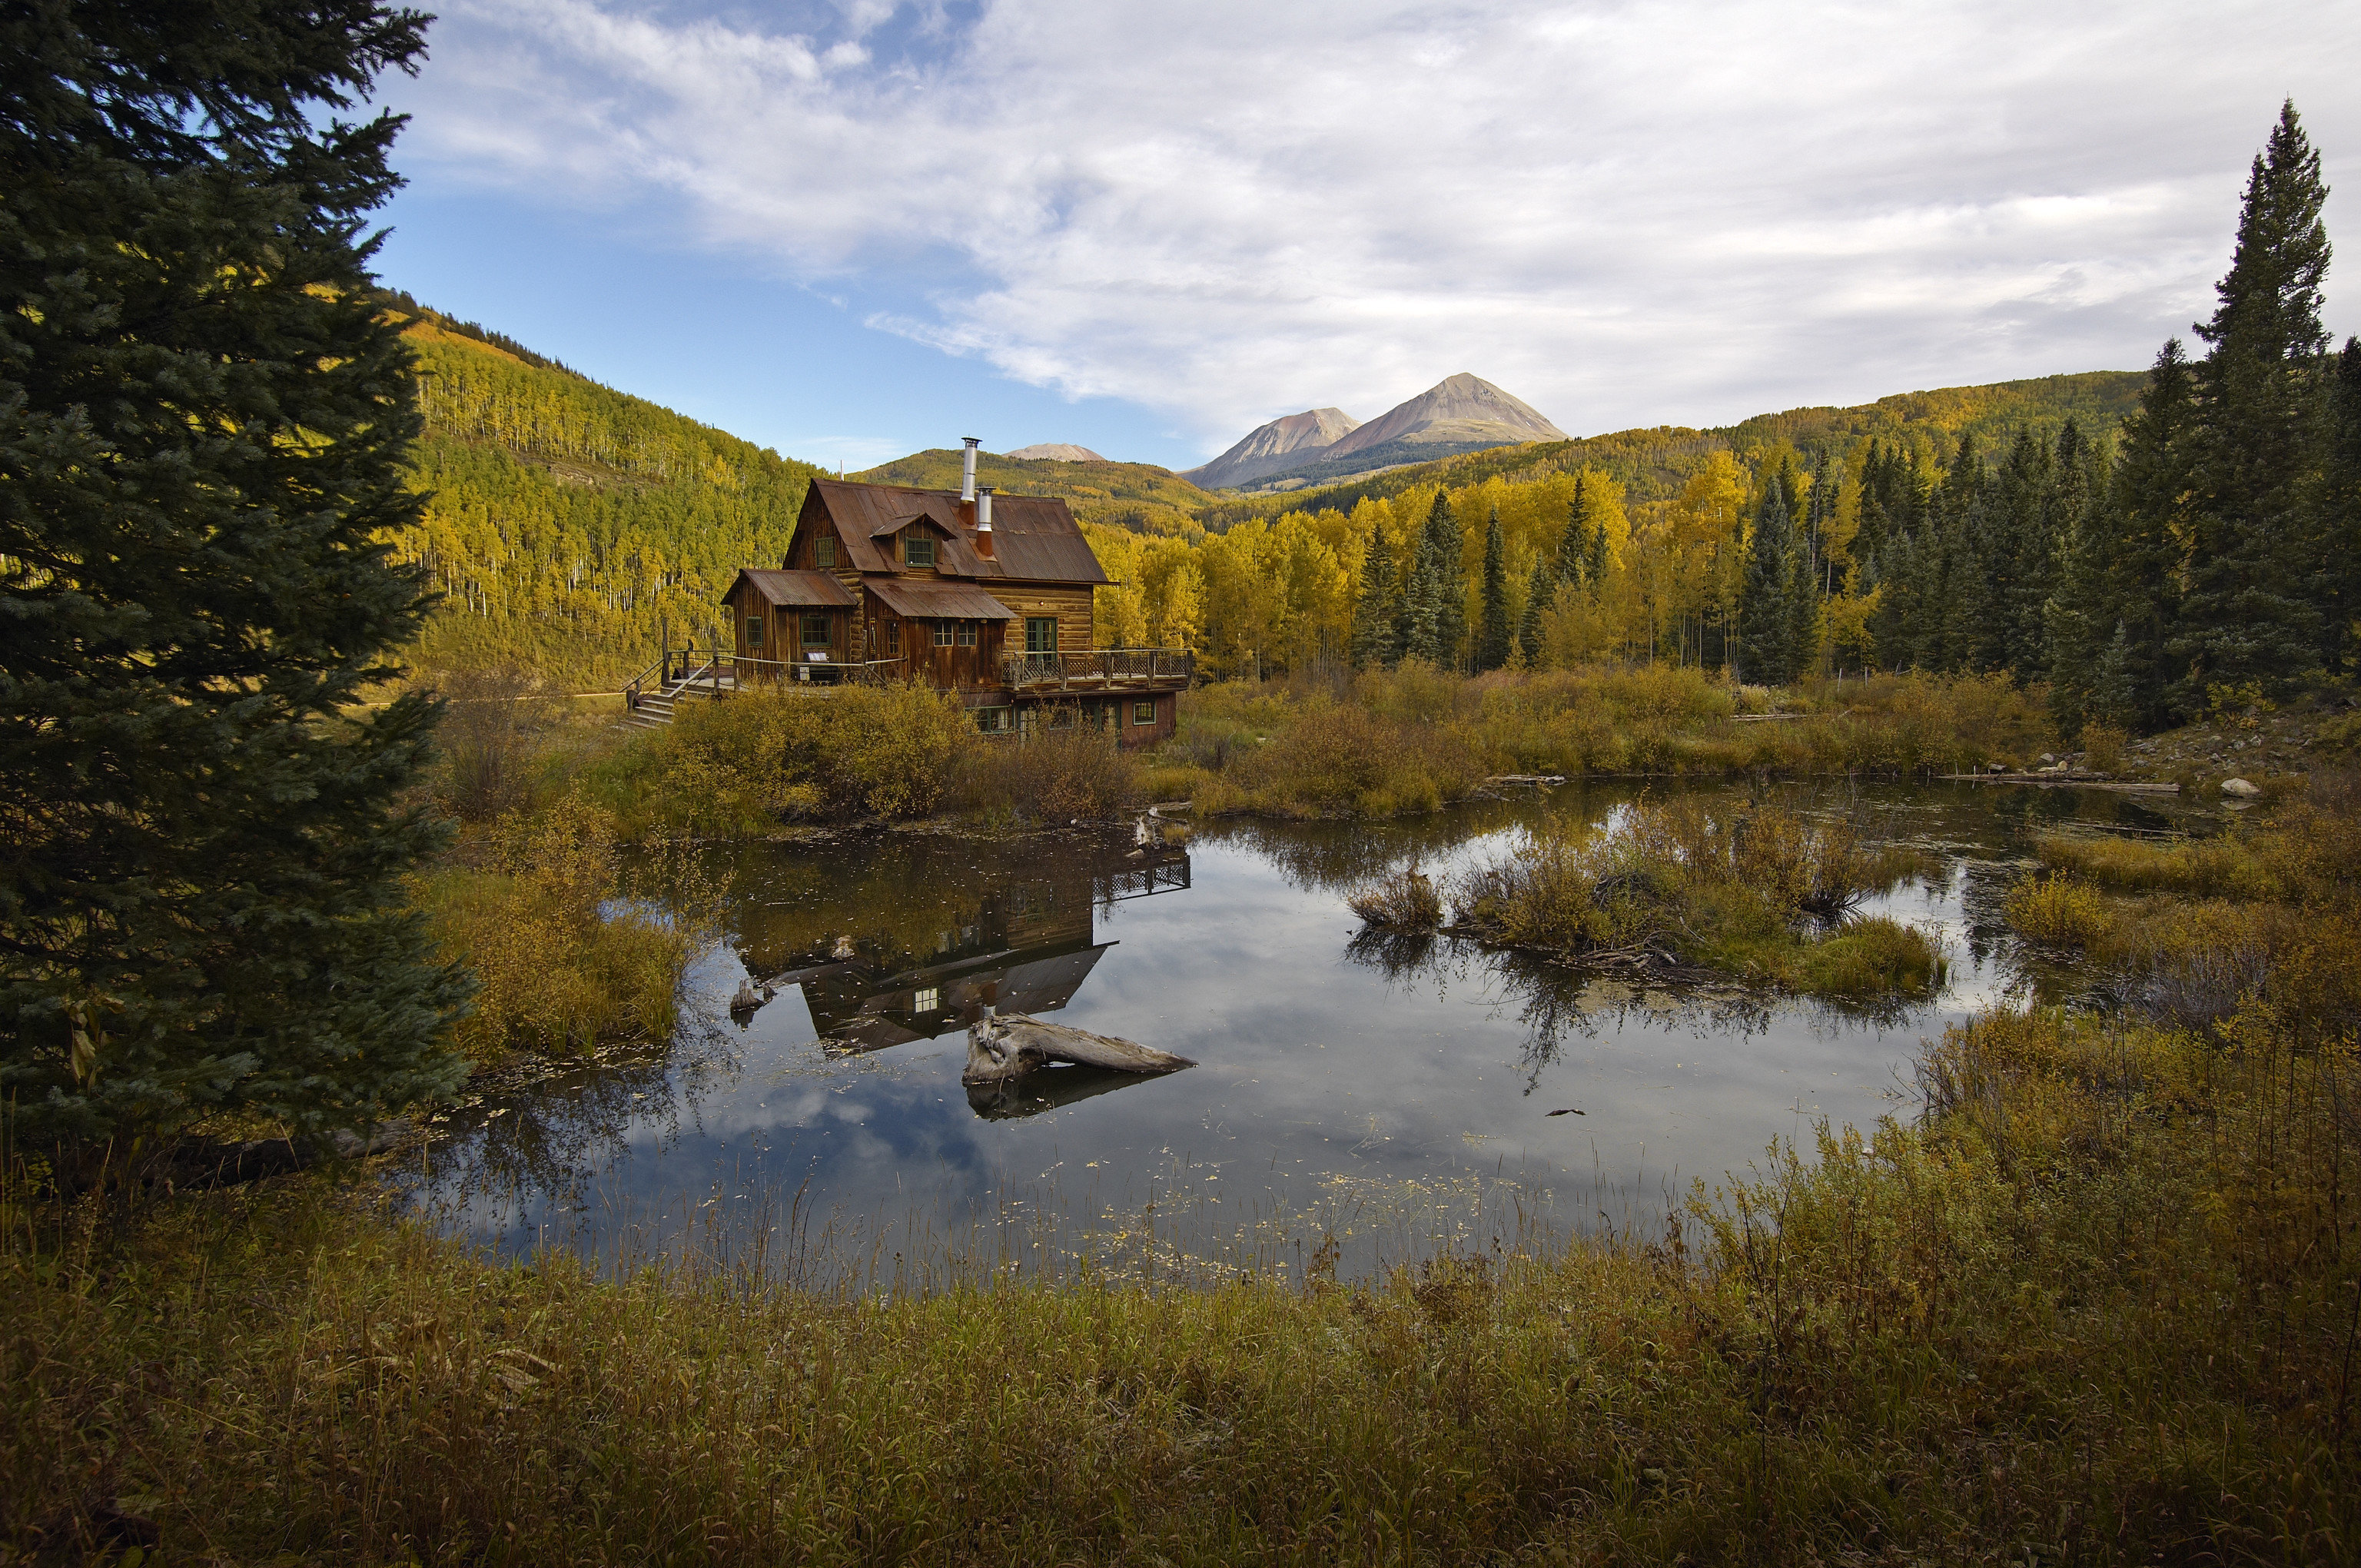 All-Inclusive Resorts Boutique Hotels Fall Travel Hotels Outdoors + Adventure Romance Trip Ideas tree outdoor sky grass reflection Nature wilderness tarn mountain mountainous landforms water leaf nature reserve Lake highland pond mount scenery loch national park fell landscape bank biome cloud wetland autumn hill tundra mountain range River valley larch meadow Forest surrounded lush hillside